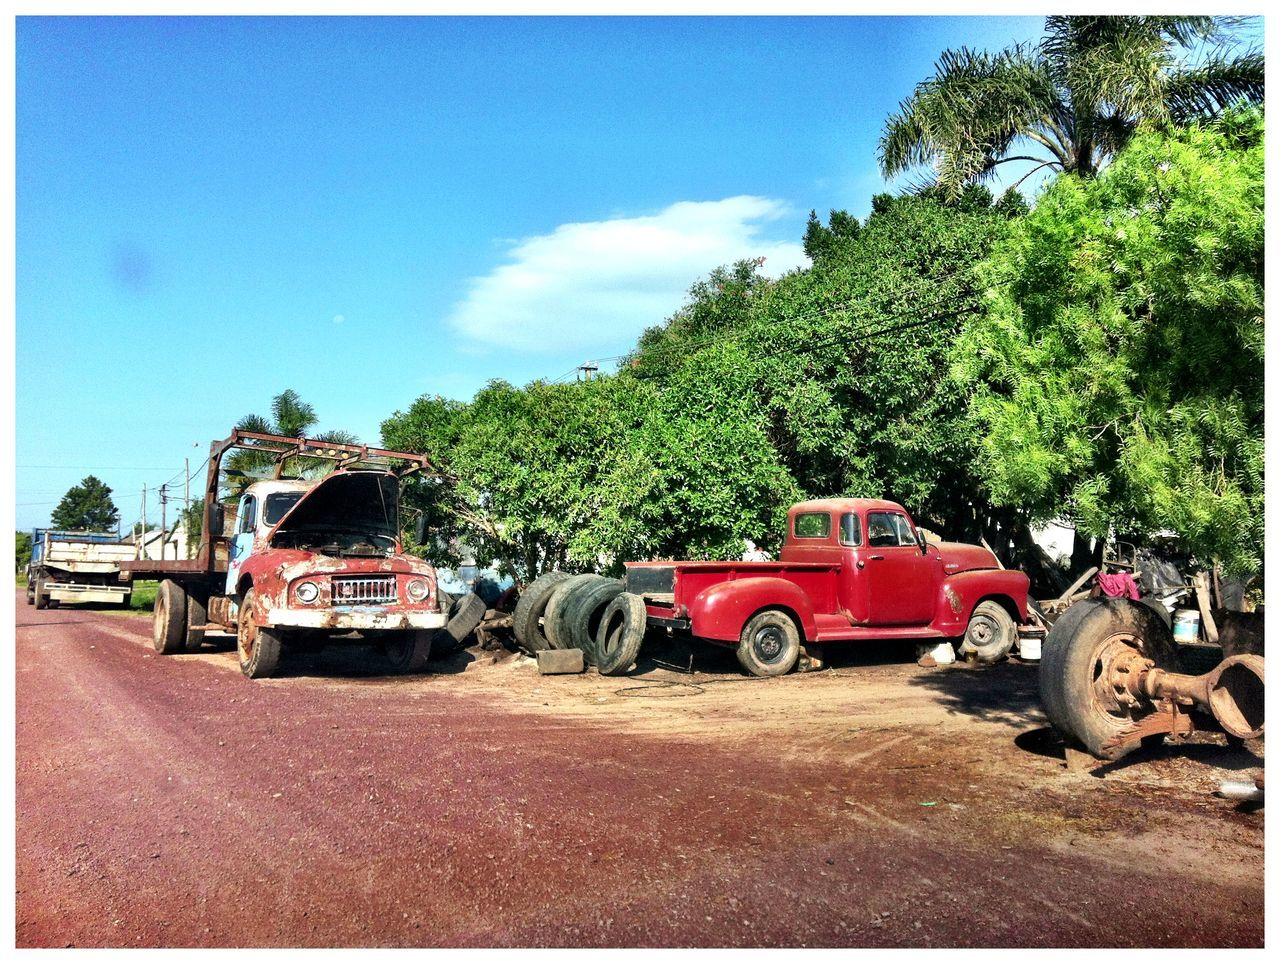 transportation, tree, land vehicle, car, mode of transport, day, red, sky, road, no people, outdoors, palm tree, nature